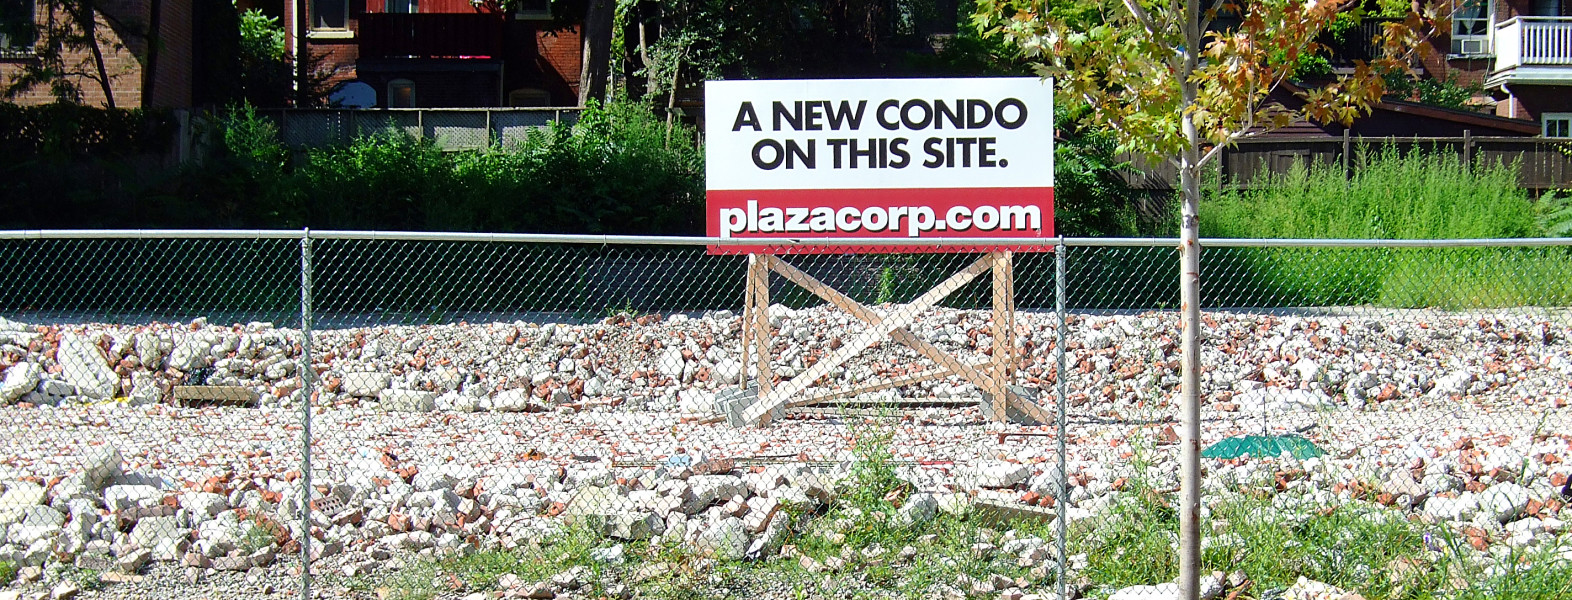 "Figure 10. Pending condo development at 50 Wellesley Street East, August 2008, with visible remnants of a just-demolished, four-storey brick office building. As of 2012 2015, this development is not yet built. Branded both as ""Plaza"" and ""50 Wellesley East"", its developers still have a positive opportunity to inscribe the ""Plaza"" (or ""Plaza at 50 Wellesley"") name permanently to the tower and to enhance legibility of the streetscape along Wellesley. Owing to its extended presence for at least four seven years, the ""Plaza"" name serves already as an effective, if ephemeral, toponym. [Idlewild]"